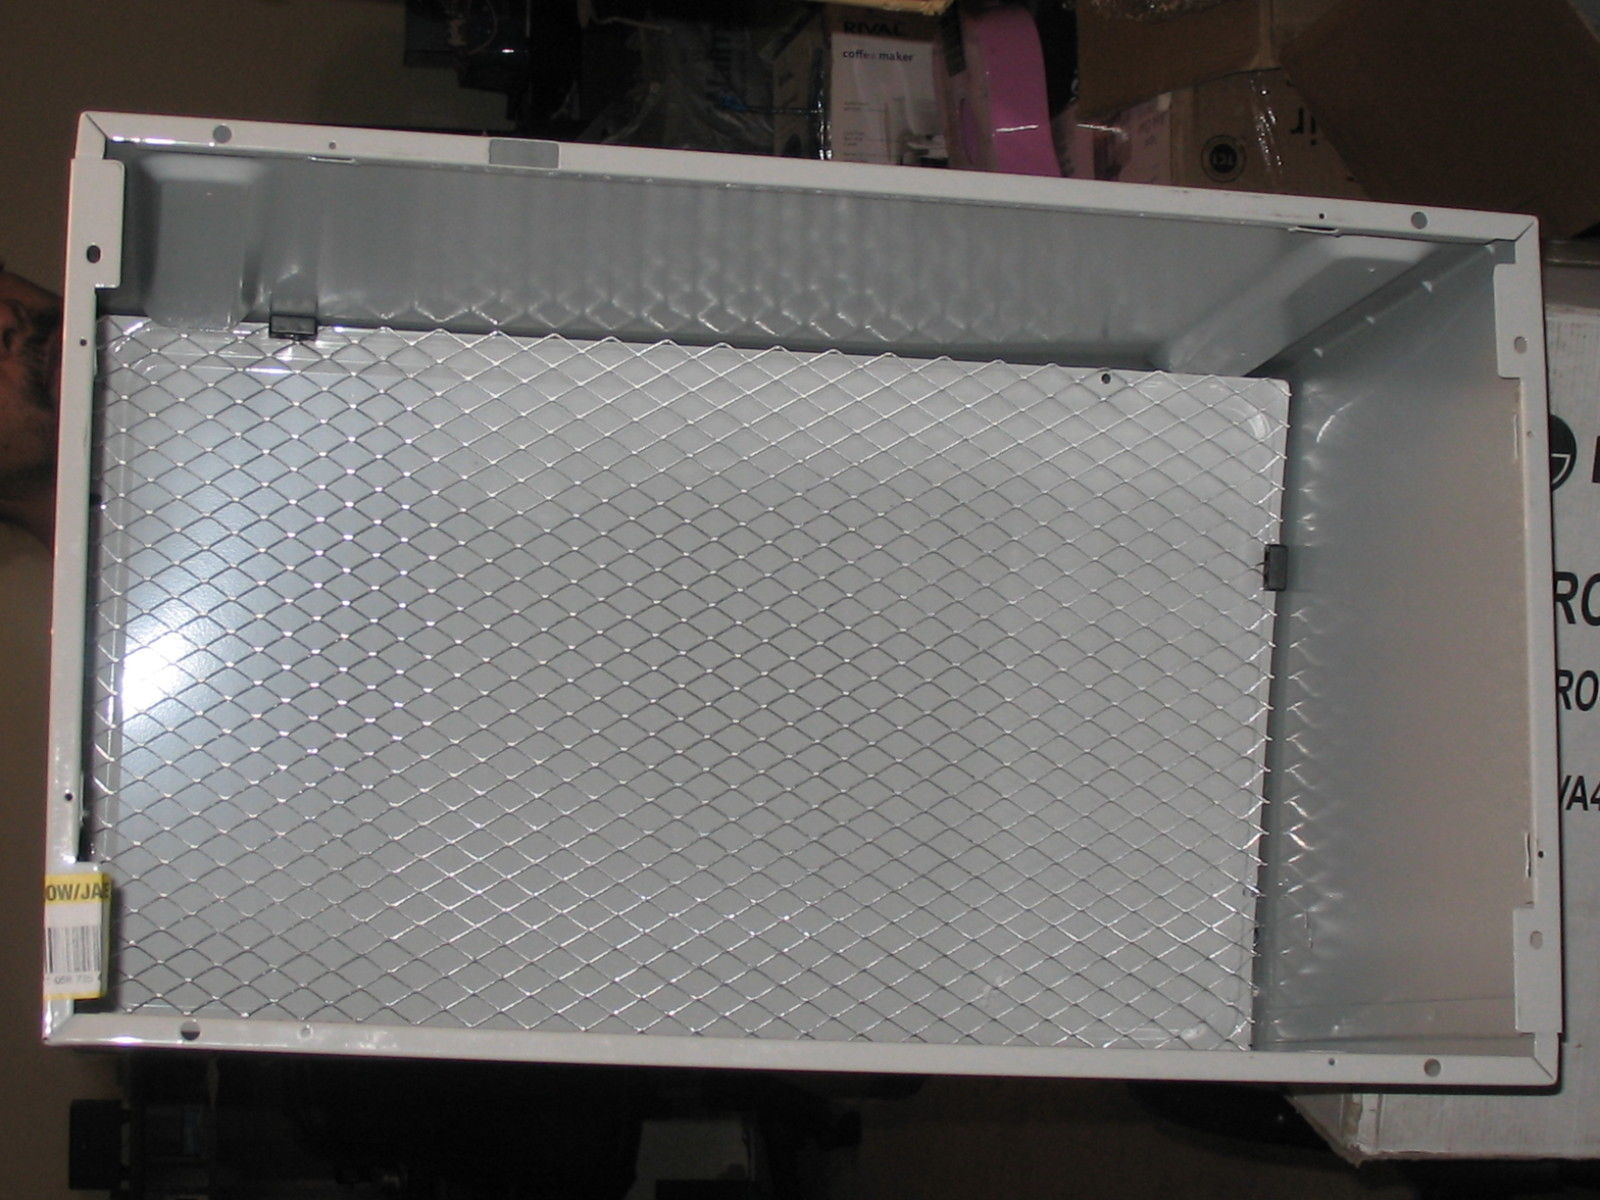 #675C4E LG Through The Wall Sleeve For Room Air Conditioner  Best 10603 Air Conditioner Wall Sleeve photos with 1600x1200 px on helpvideos.info - Air Conditioners, Air Coolers and more